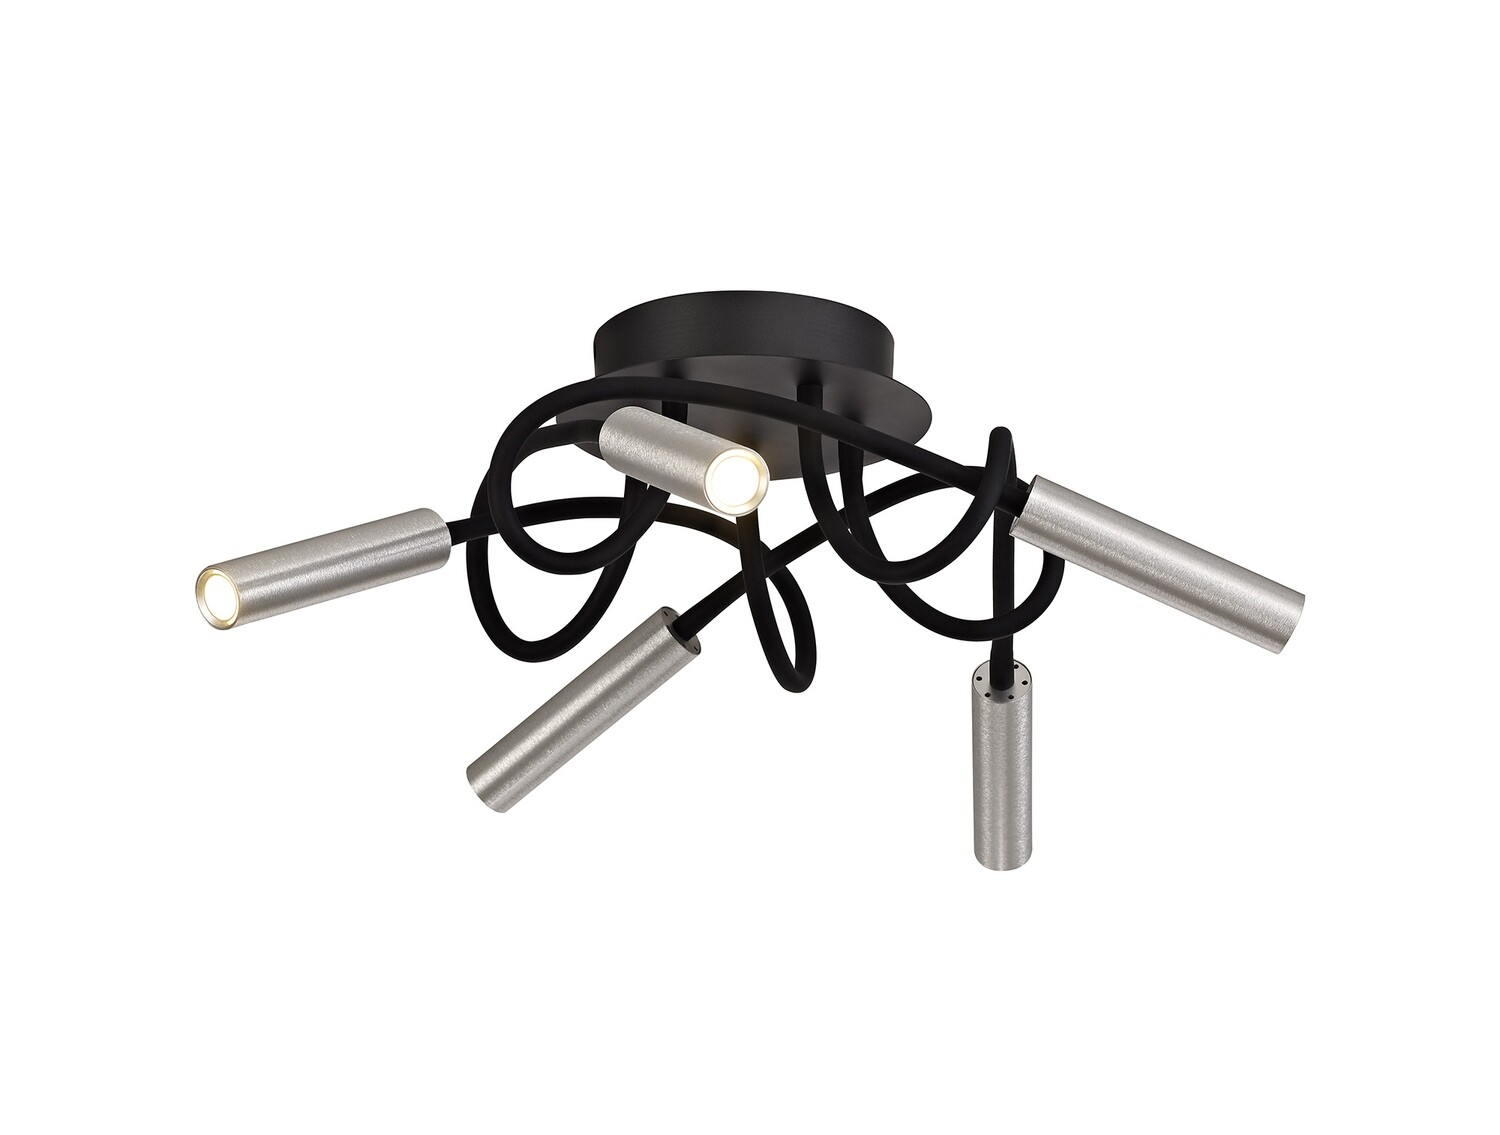 Stanie Ceiling, 5 Light Adjustable Arms, 5 x 5W LED Dimmable, 3000K, 1550lm, Black/Aluminium